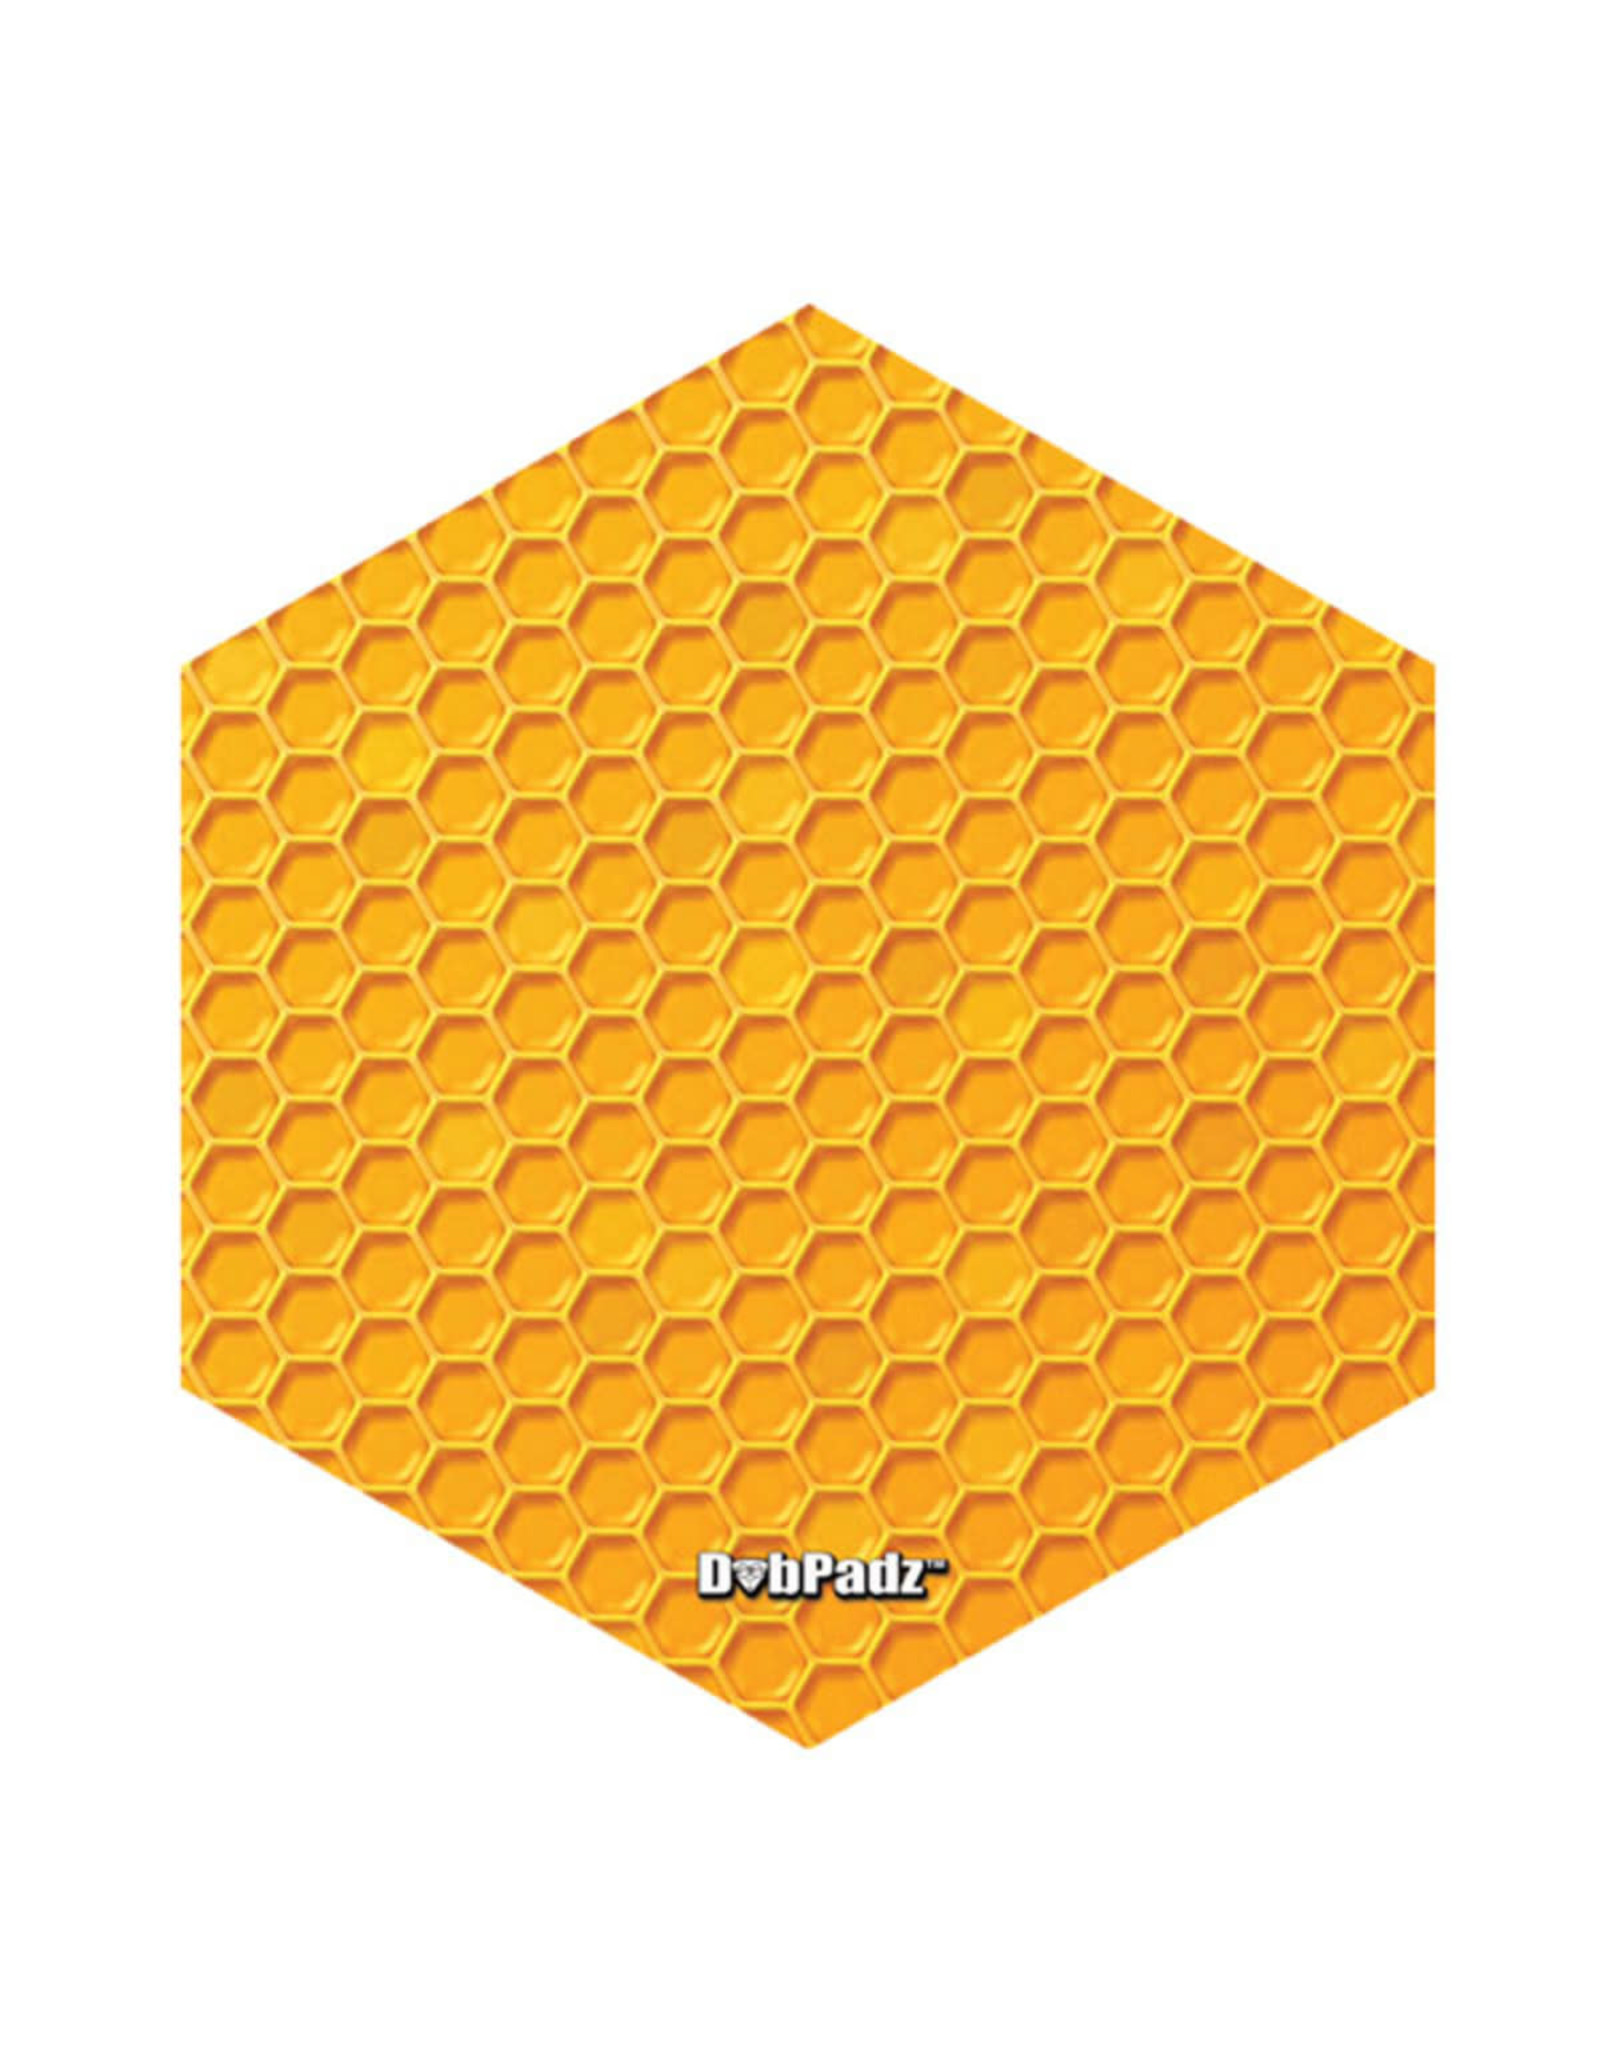 "DabPadz DabPadz Round Fabric Top - 8"" / Honeycomb Hex"